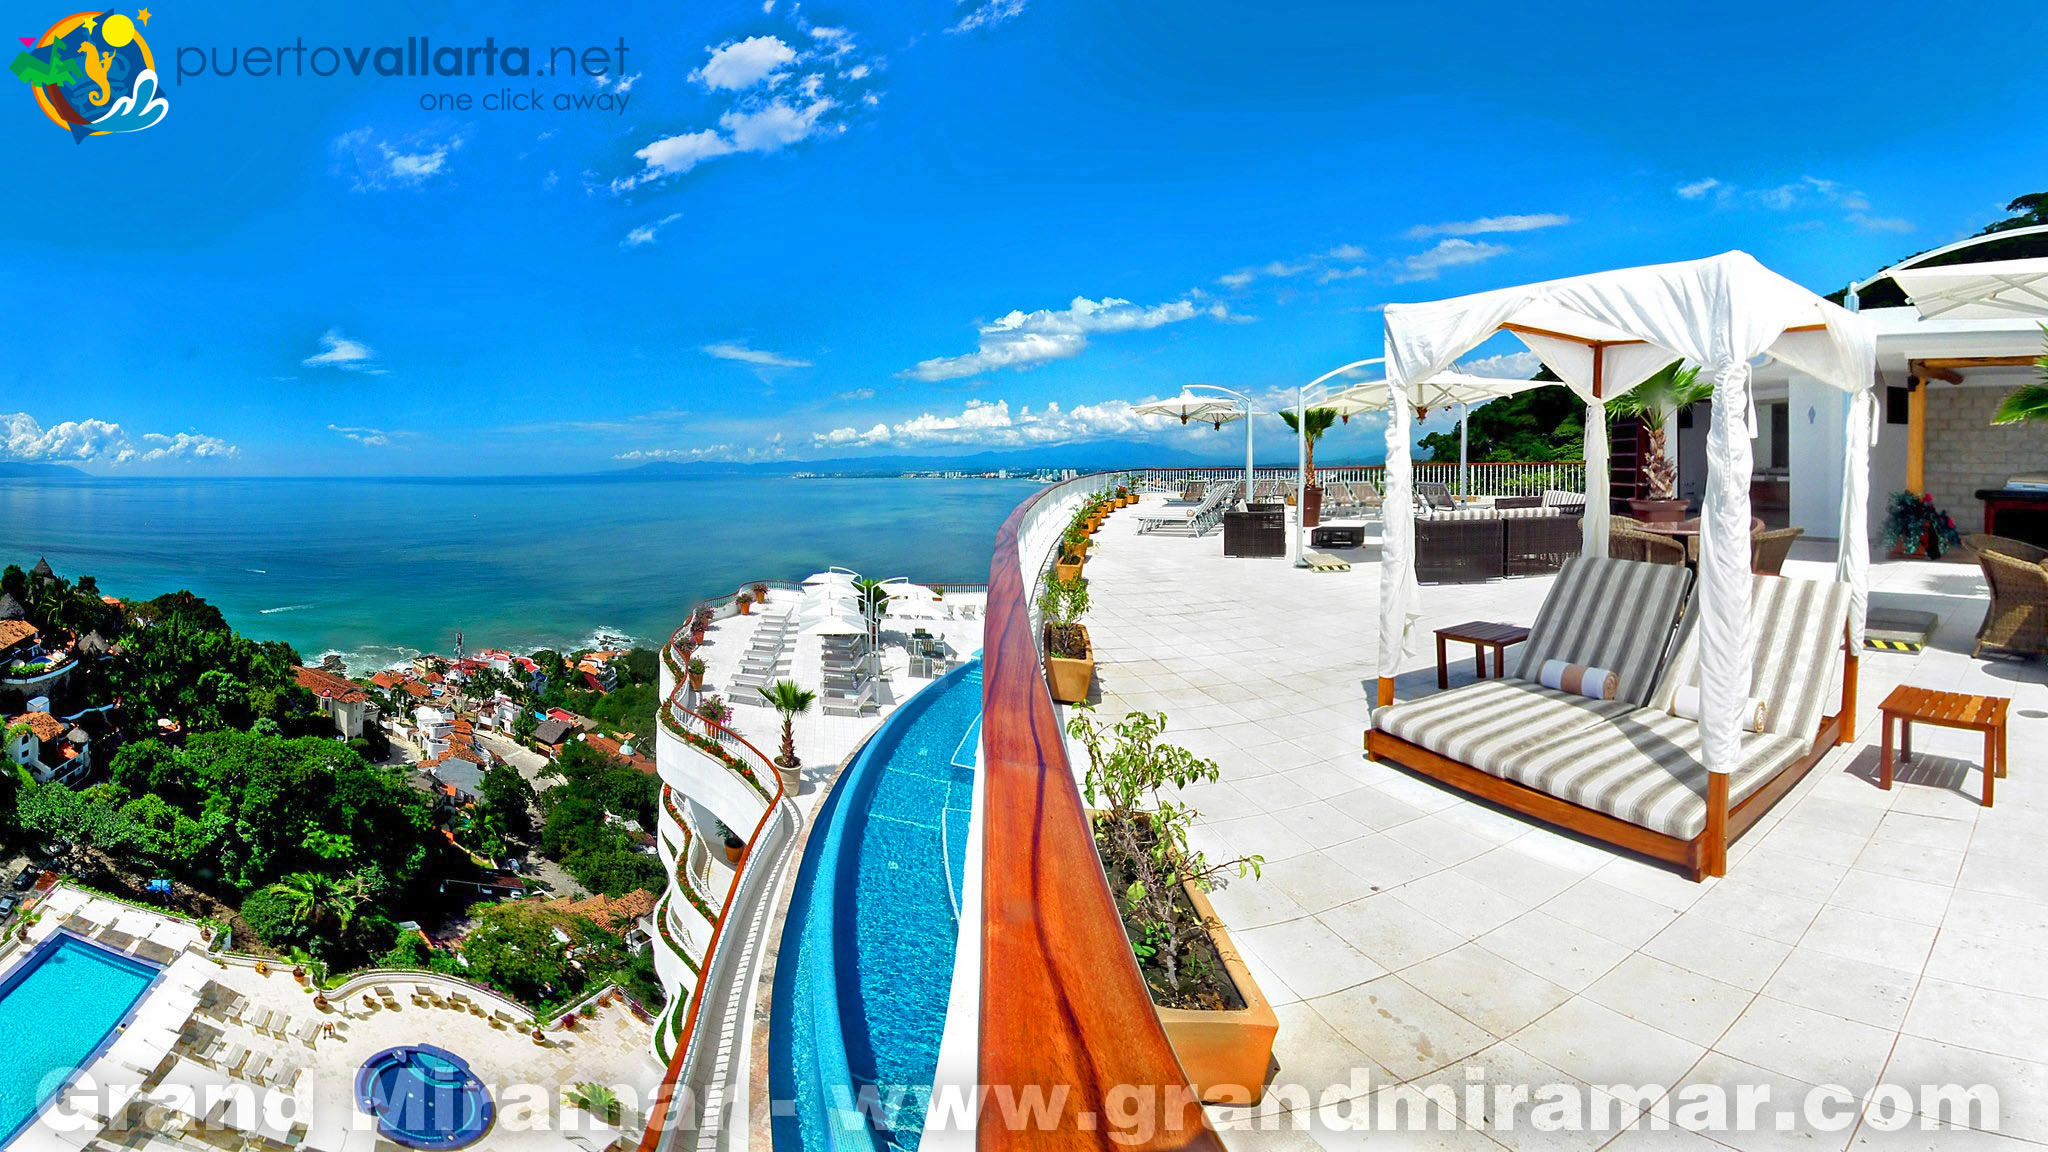 Top All Inclusive Hotels Resorts In Puerto Vallarta - Puerto vallarta resorts all inclusive